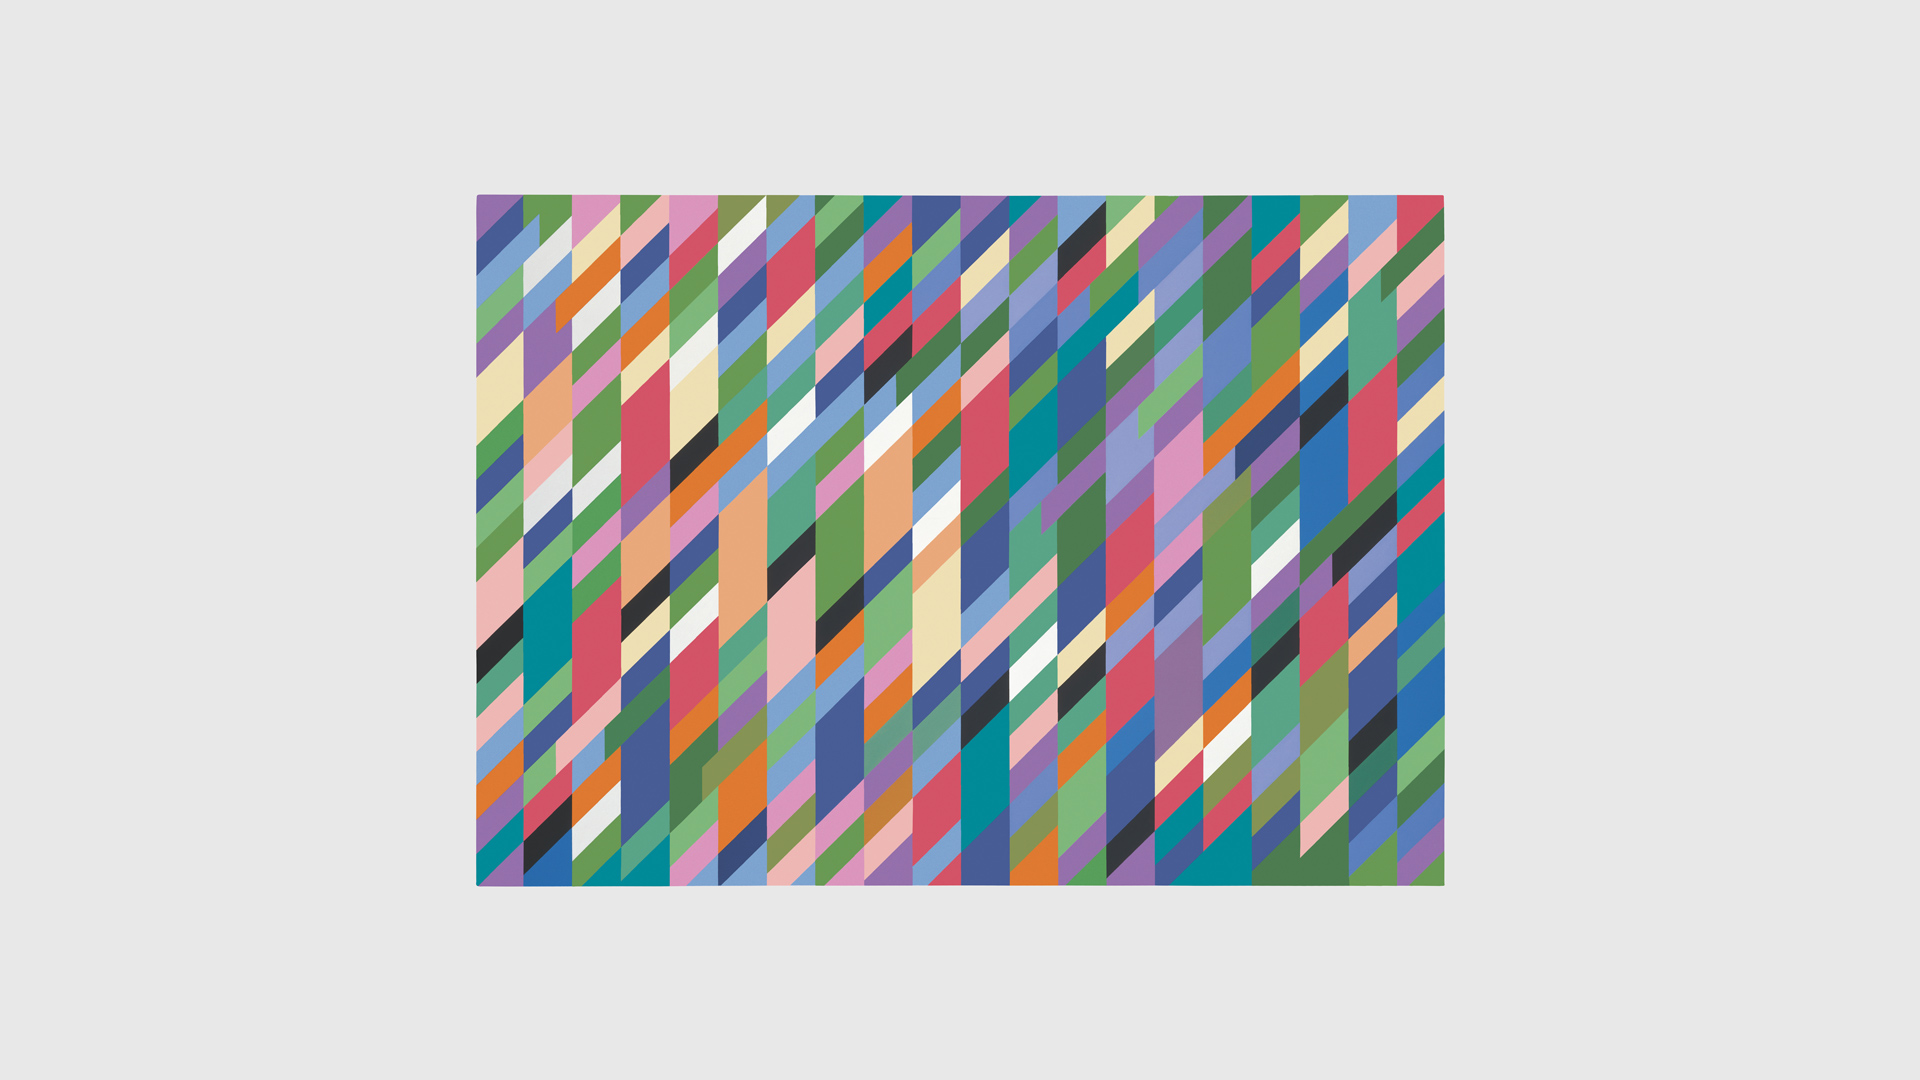 A painting by Bridget Riley, titled High Sky, dated 1991.